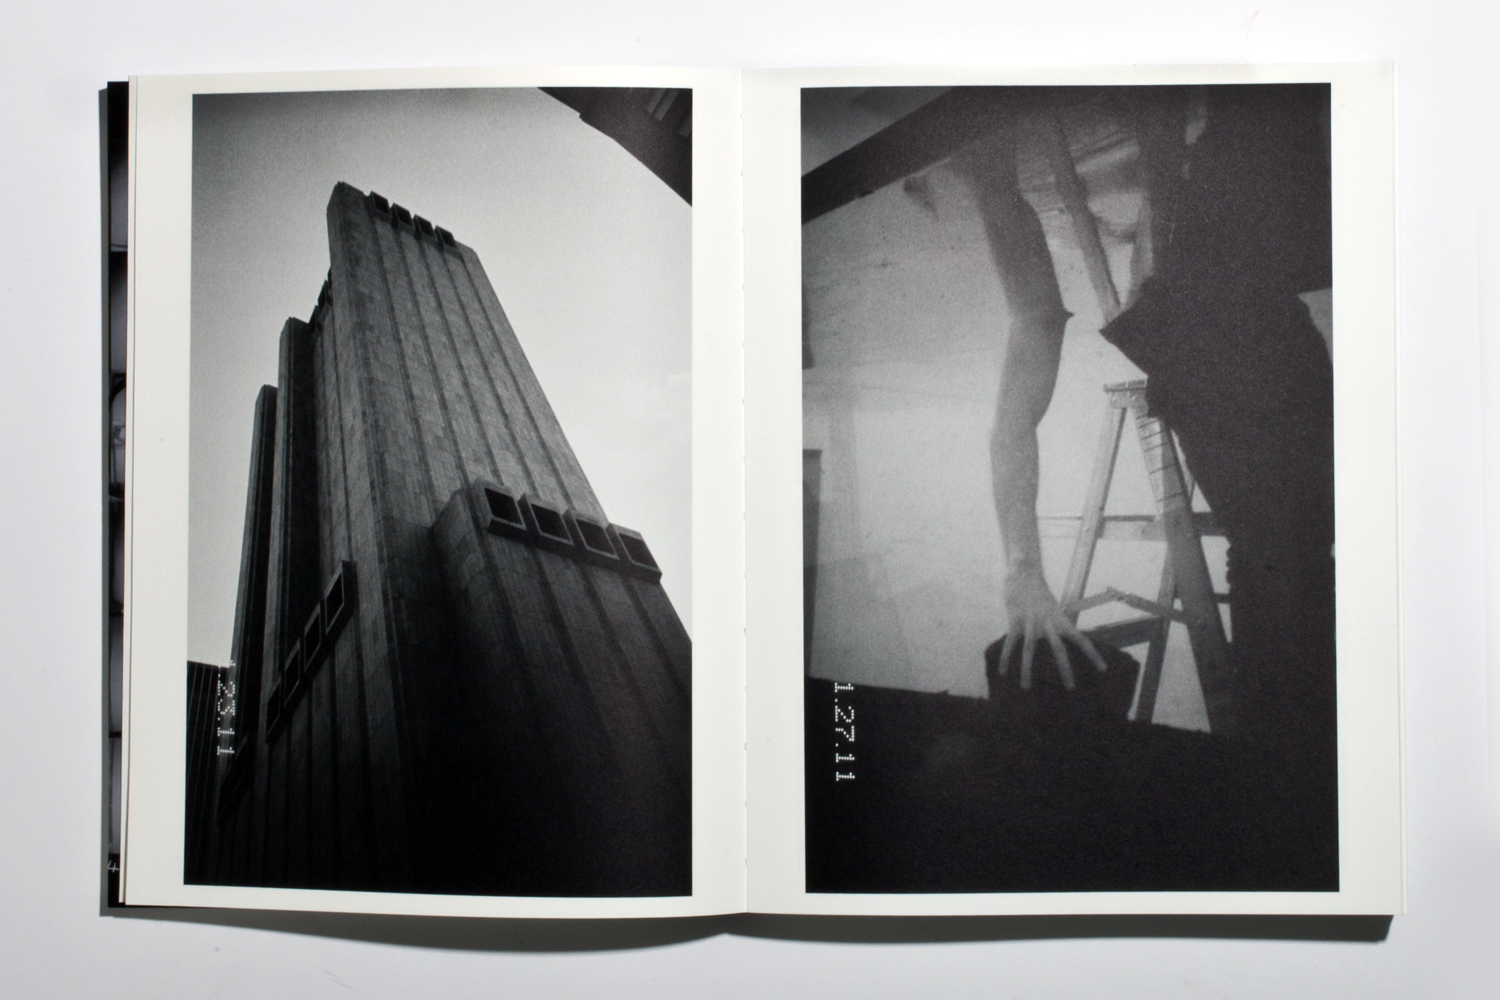 It's more than just a photography book, it is an artwork in itself.                                                               —AA Bronson, artist and the director of the New York Art Book Fair